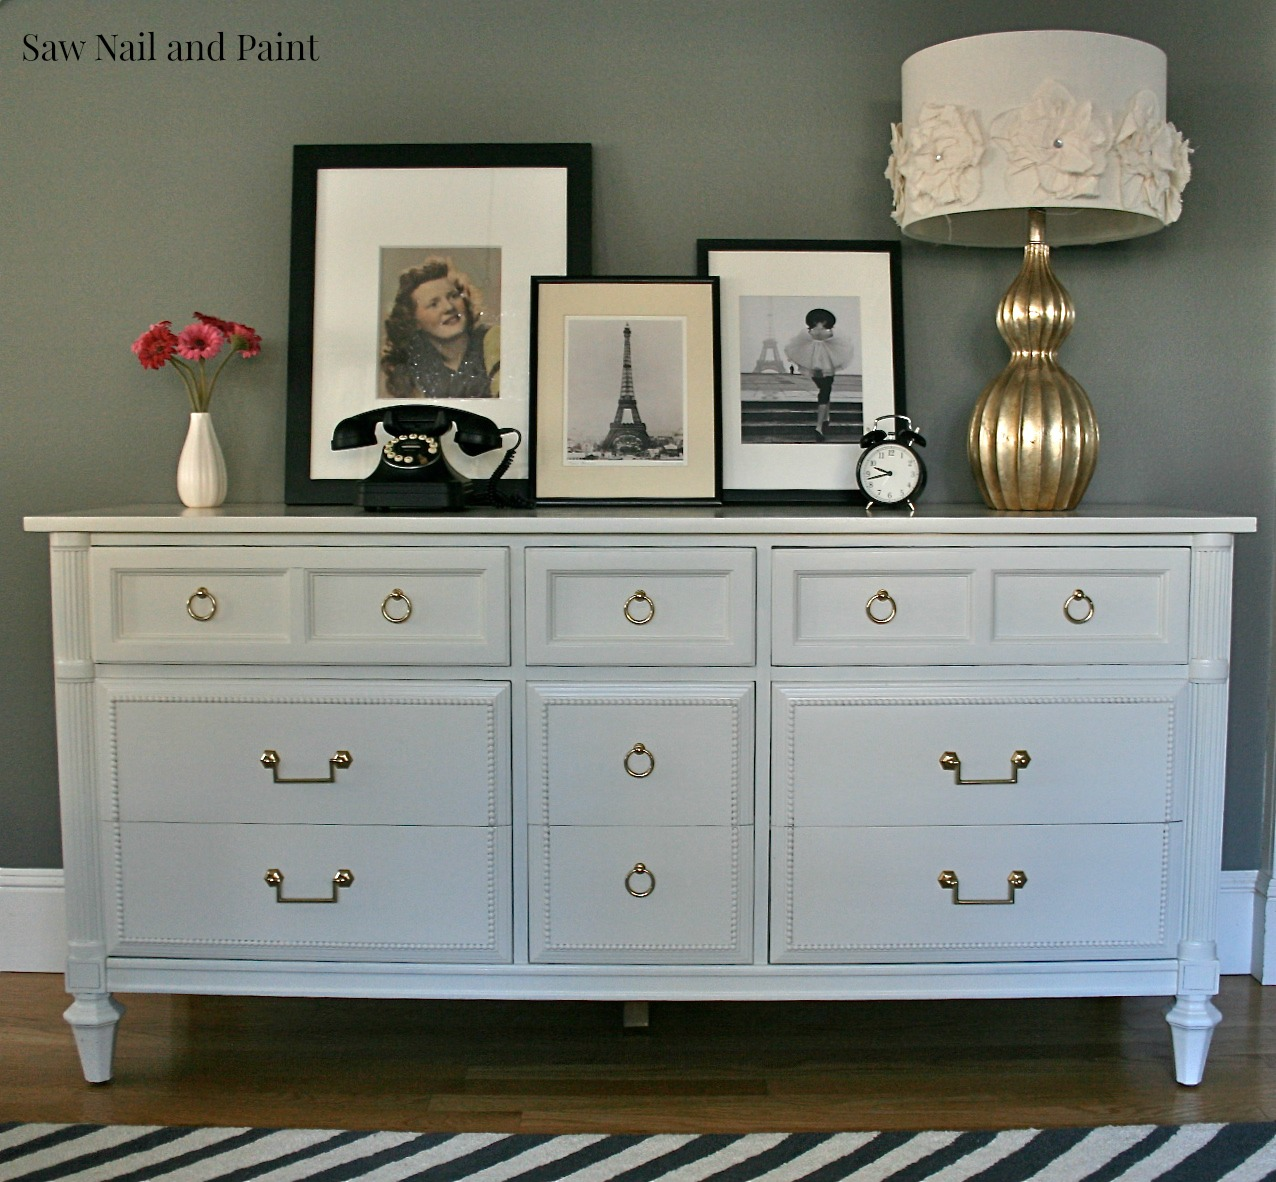 antique white thomasville dresser saw nail and paint. Black Bedroom Furniture Sets. Home Design Ideas